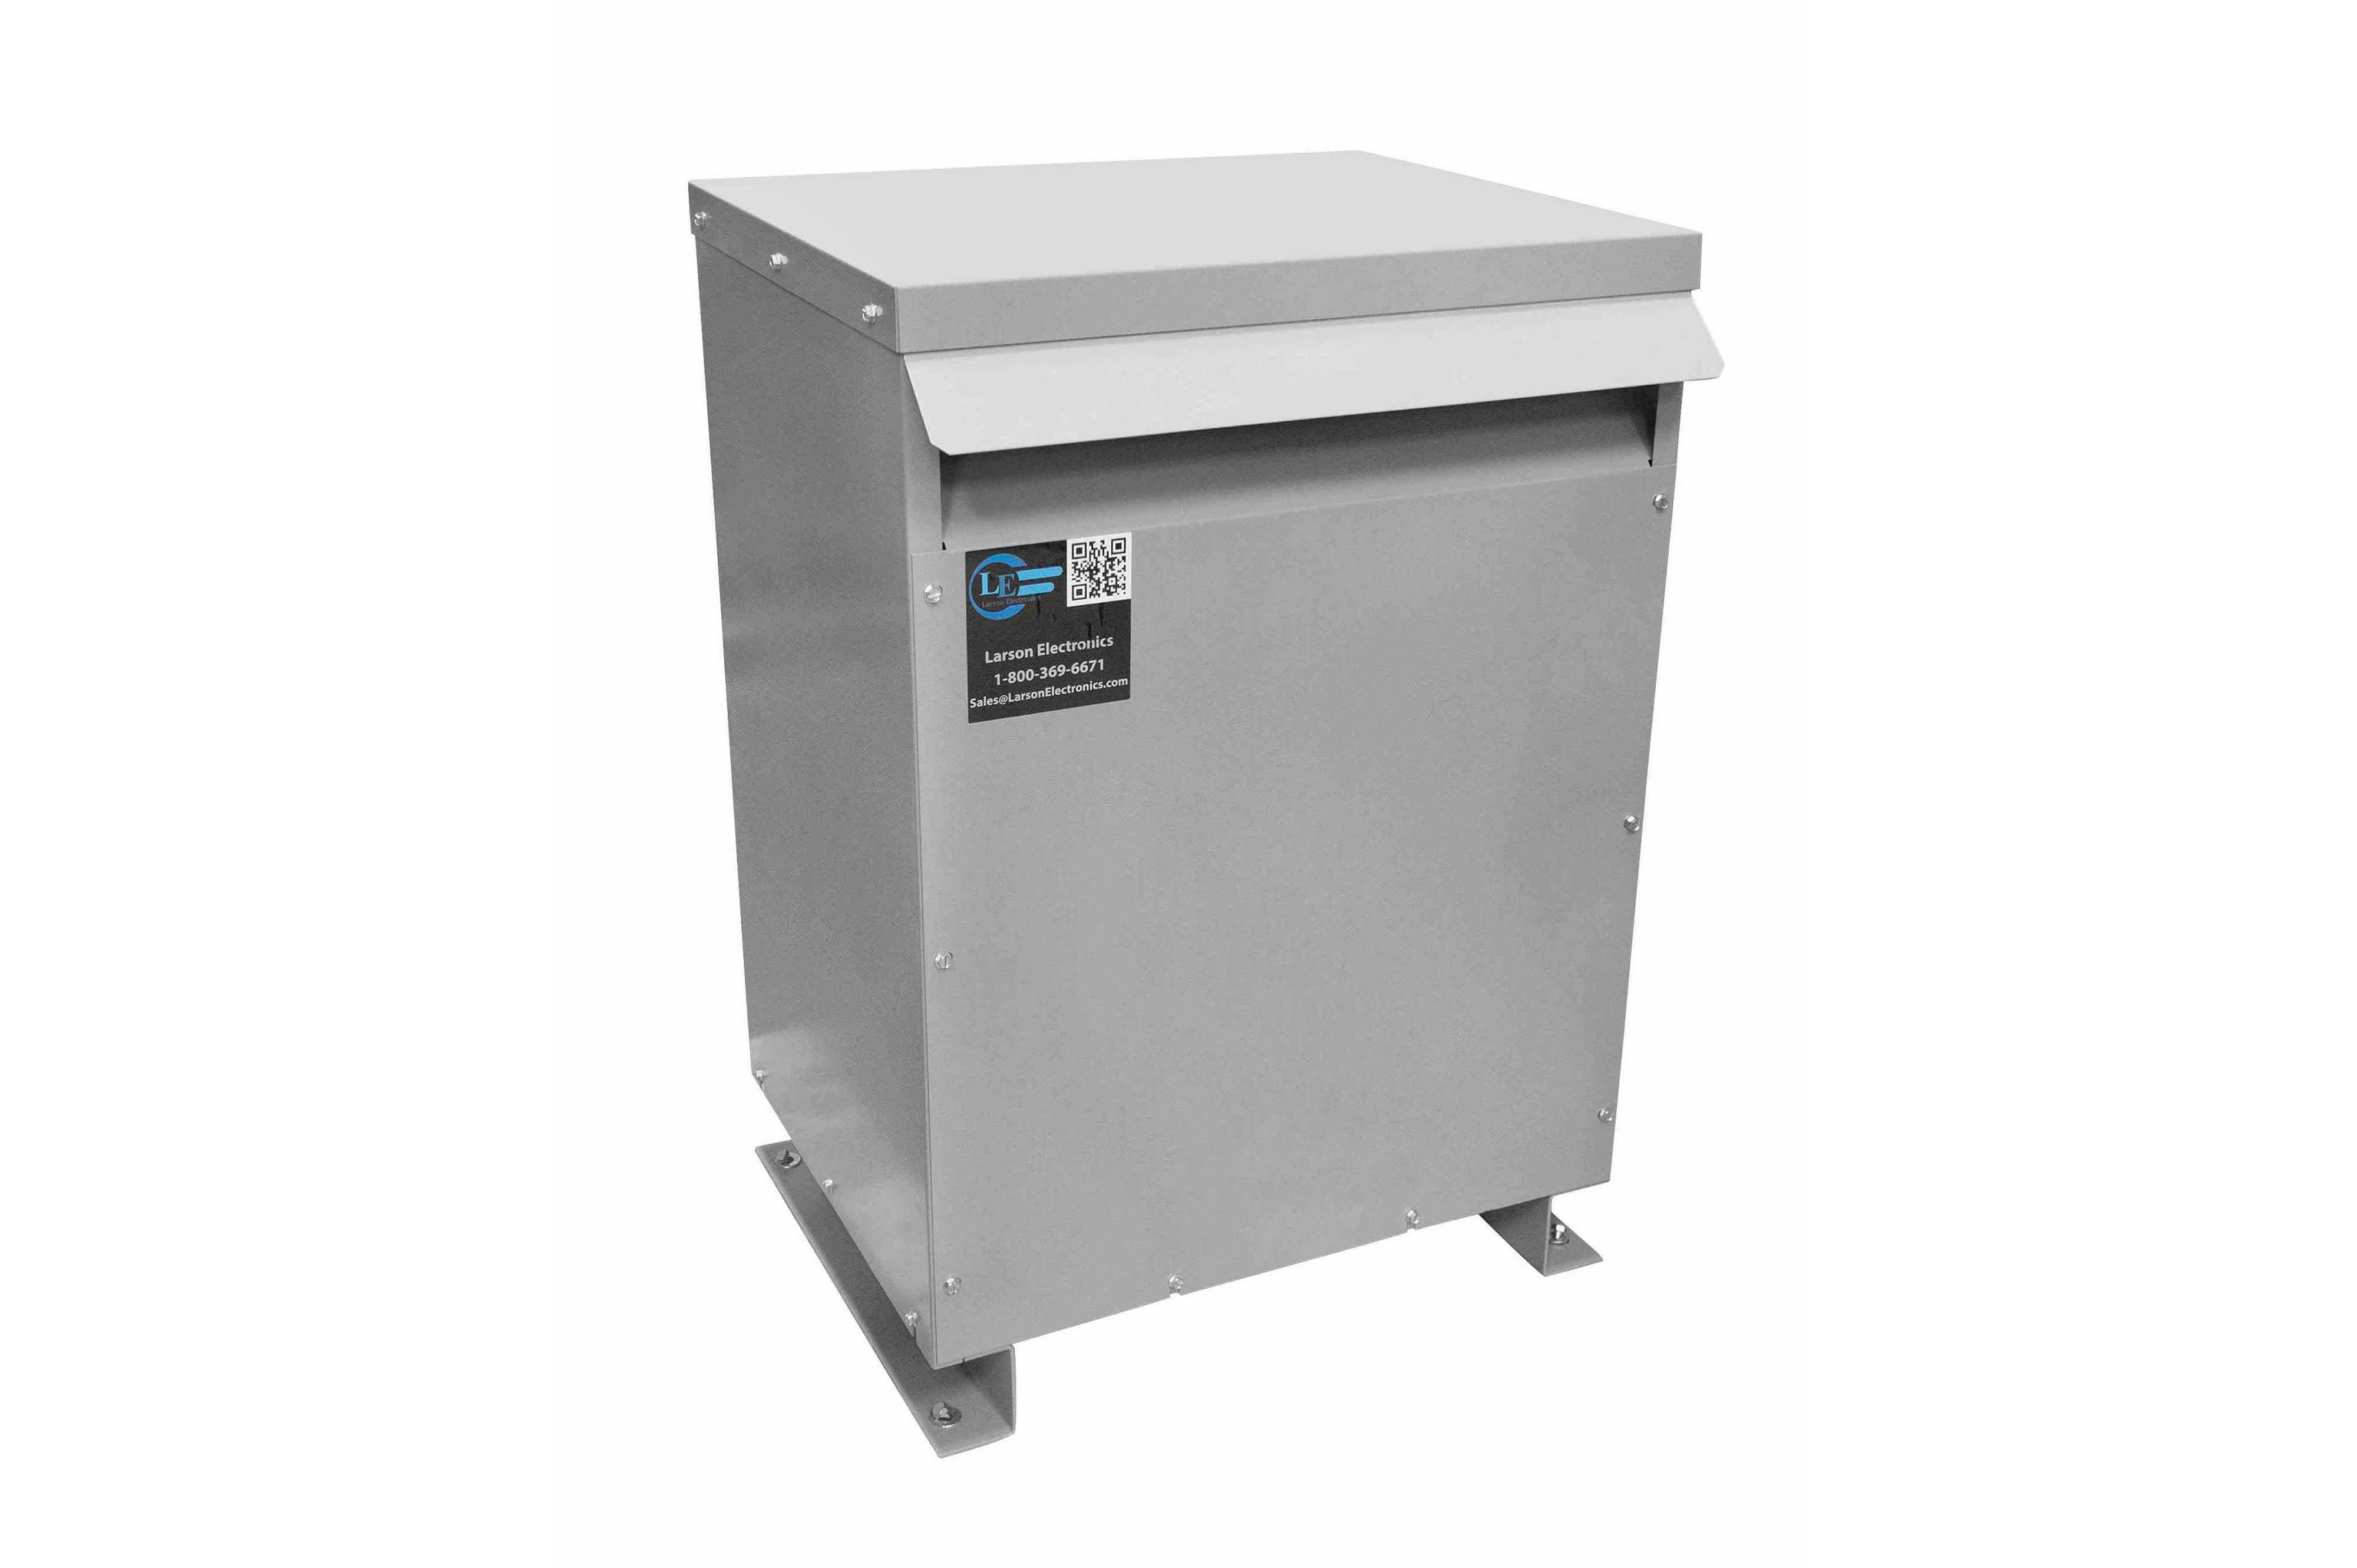 25 kVA 3PH Isolation Transformer, 460V Wye Primary, 415V Delta Secondary, N3R, Ventilated, 60 Hz